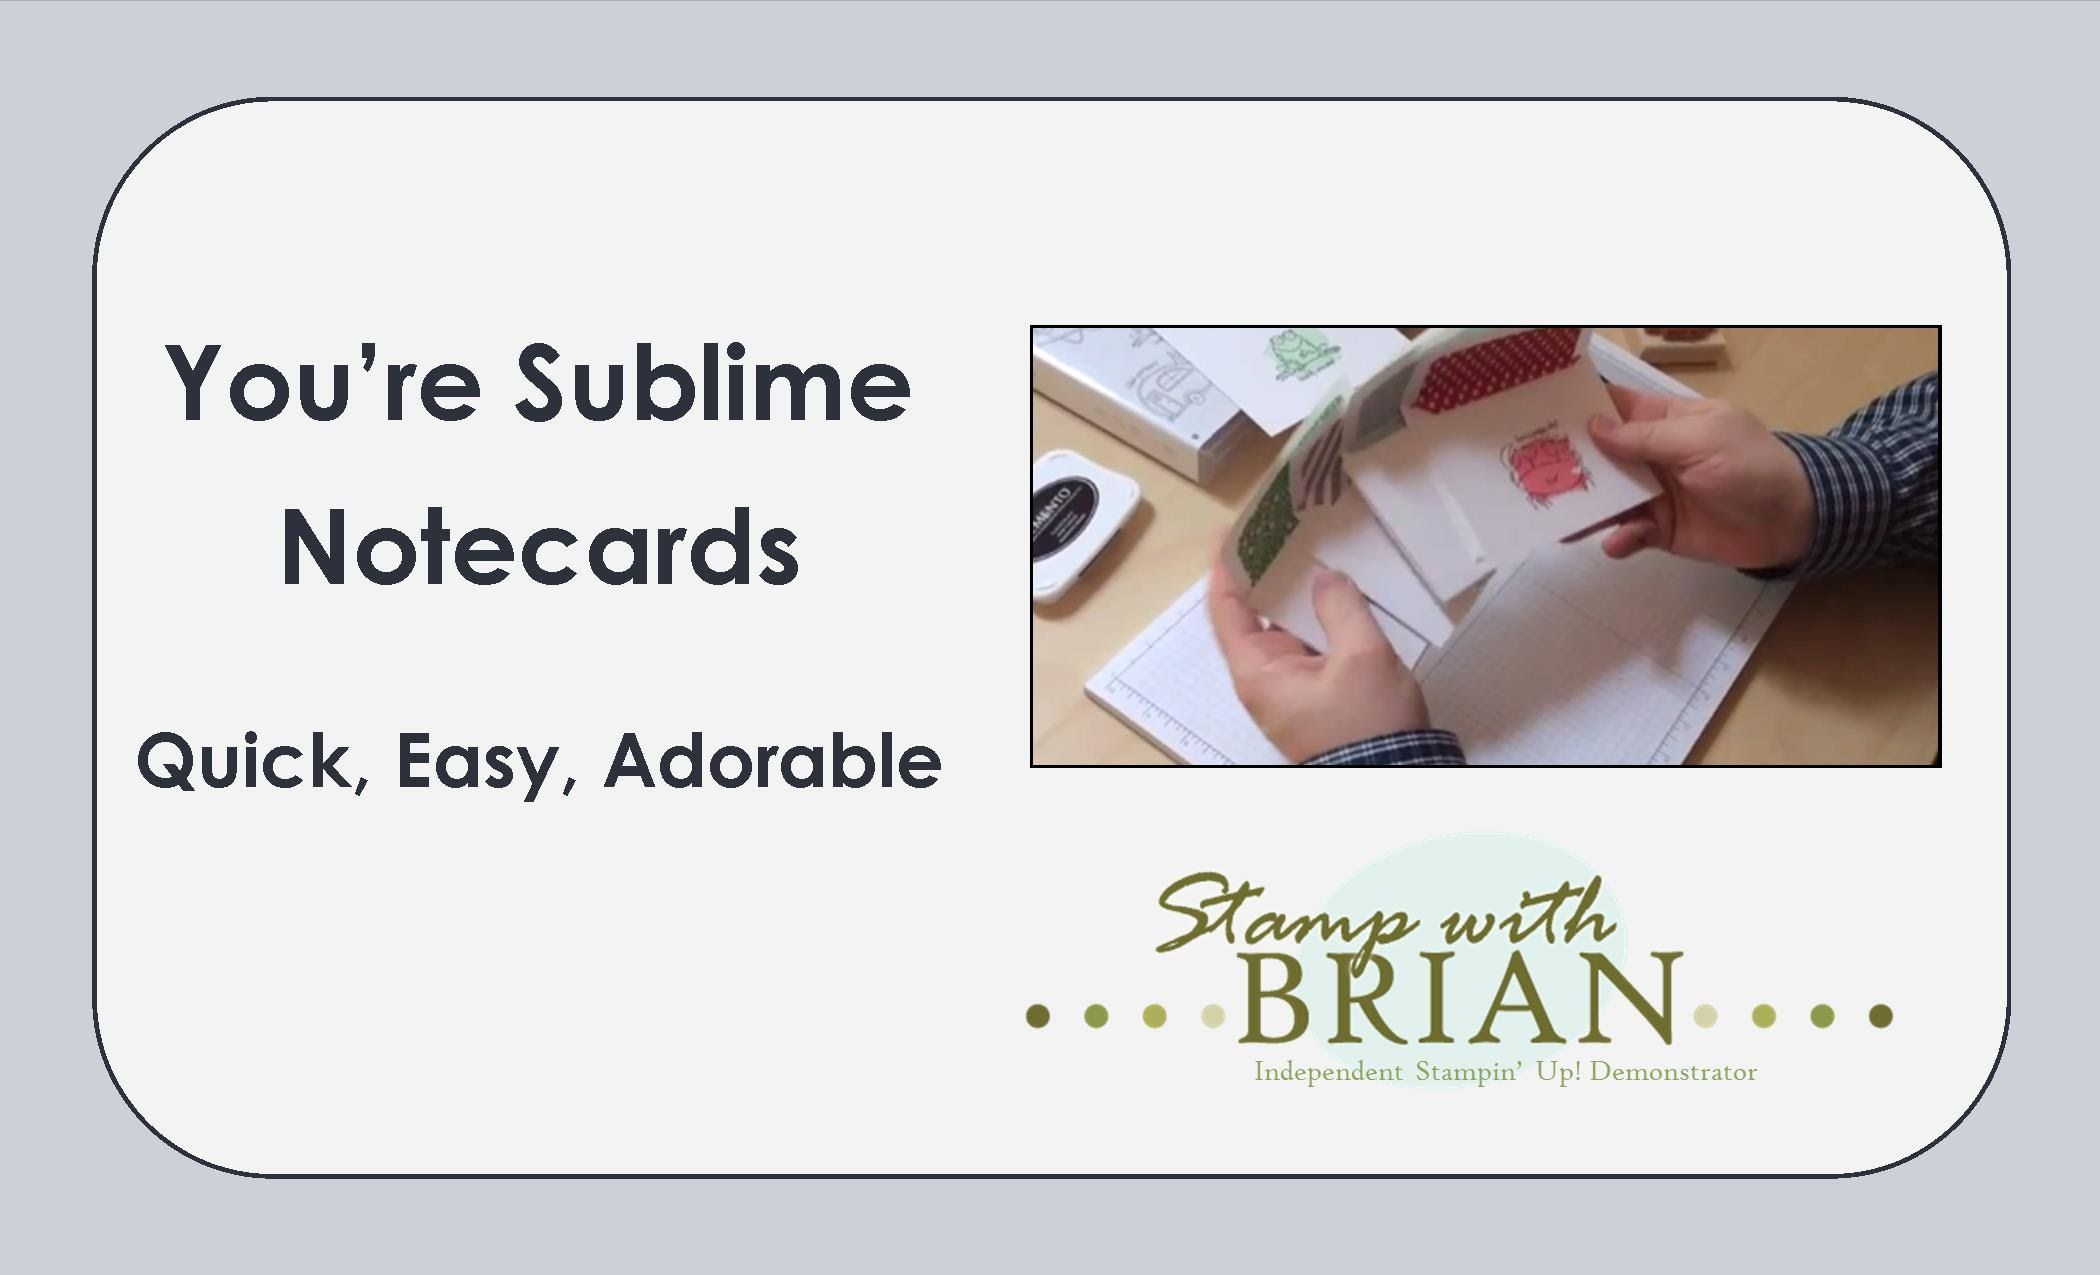 You're Sublime Notecards